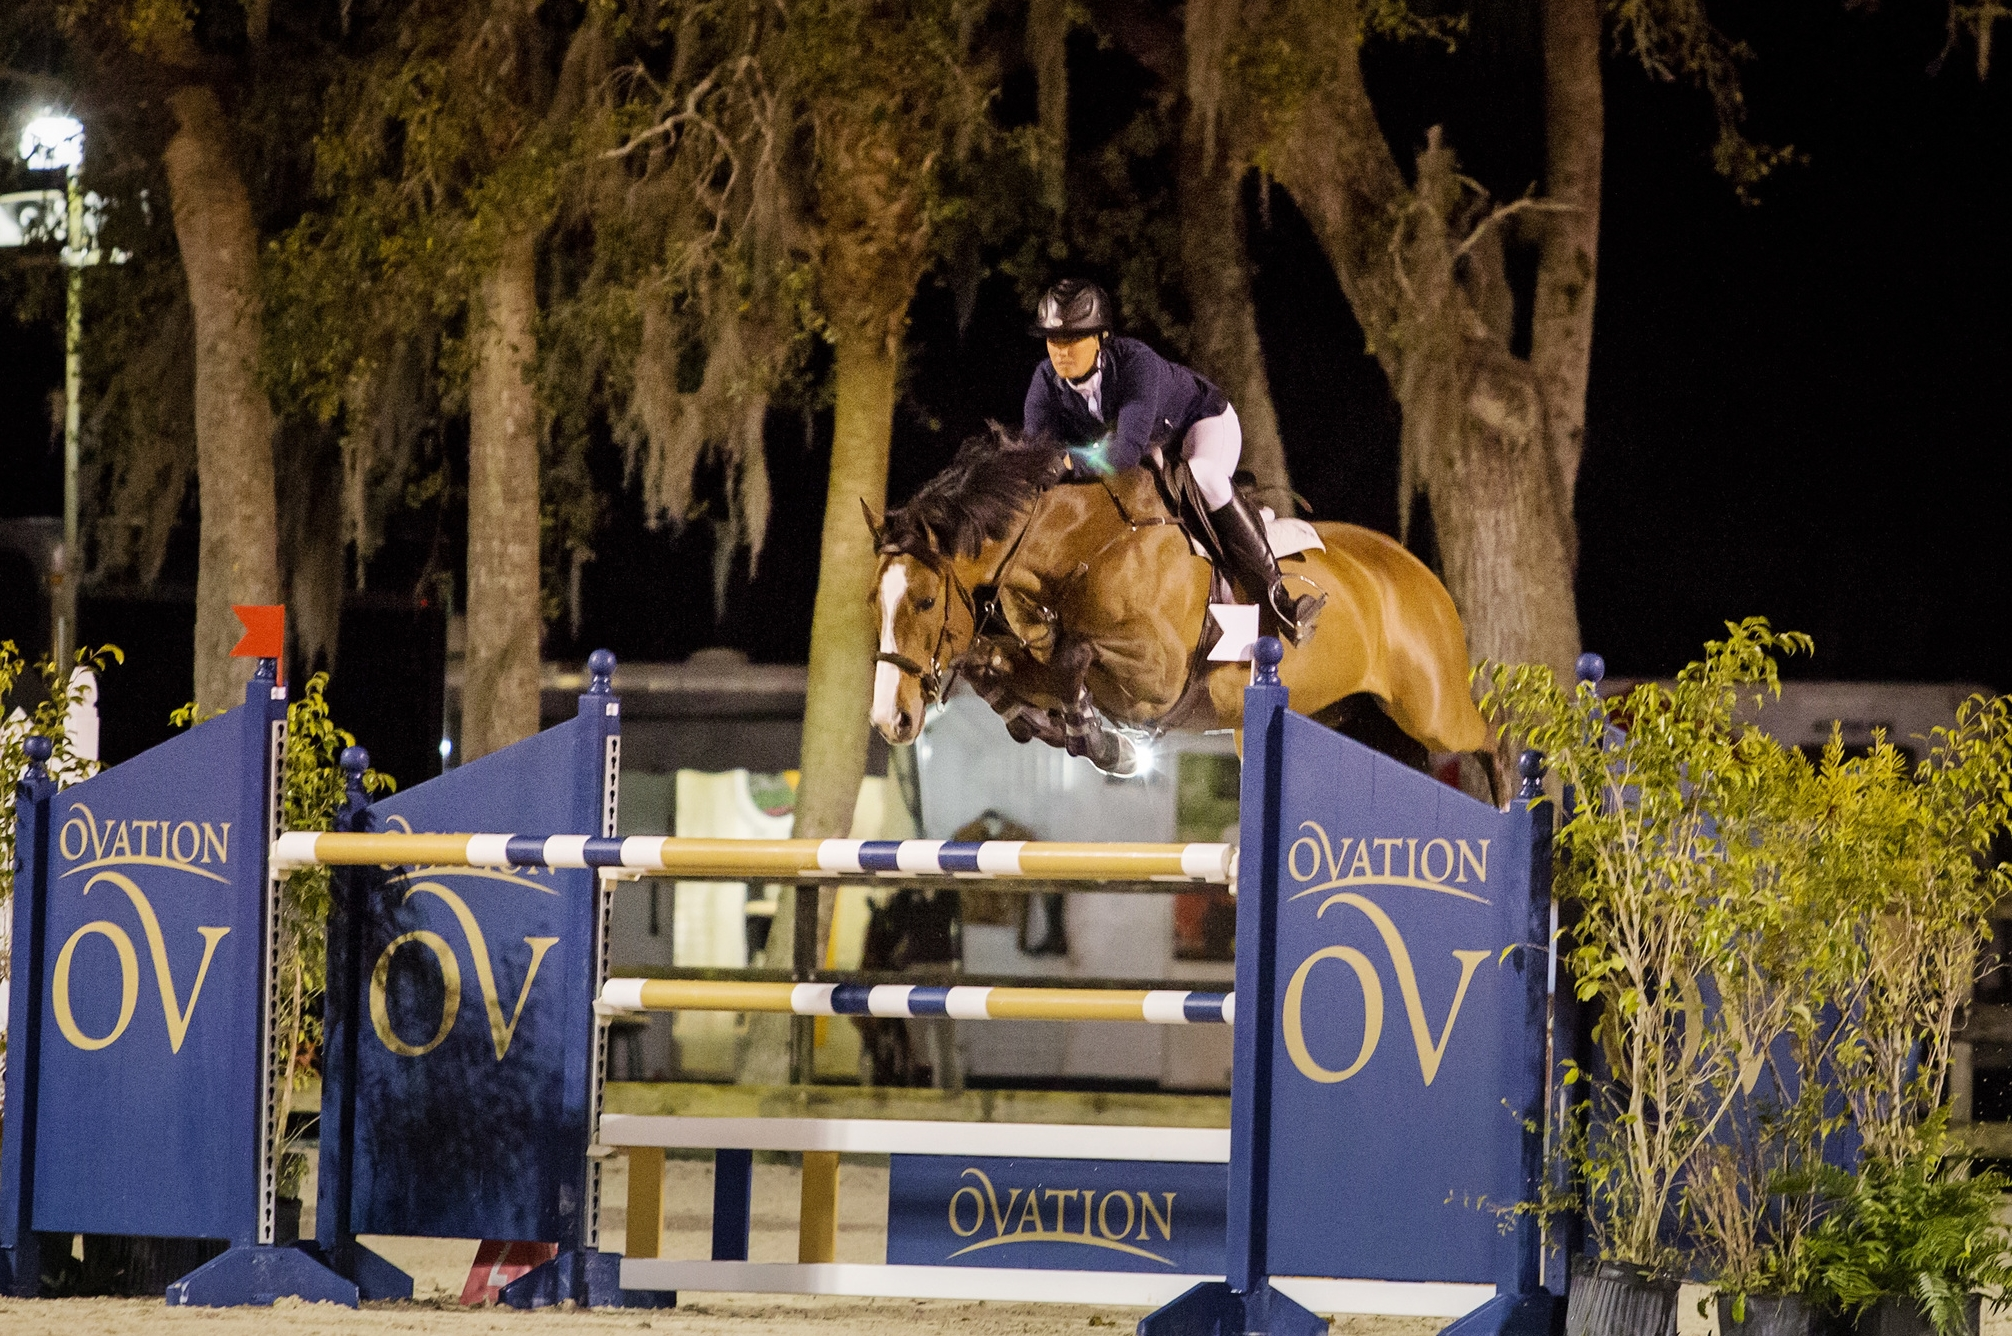 VDL Coverboy: 2007 KWPN gelding by Veron out of a Corland mare. Currently jumping Grand Prix.Champion first time doing 1.40m. Winner 5, 6, 7 year old classes as well as junior/amateur jumpers, ribbon winner multiple Grand Prix. Has also done equitation.